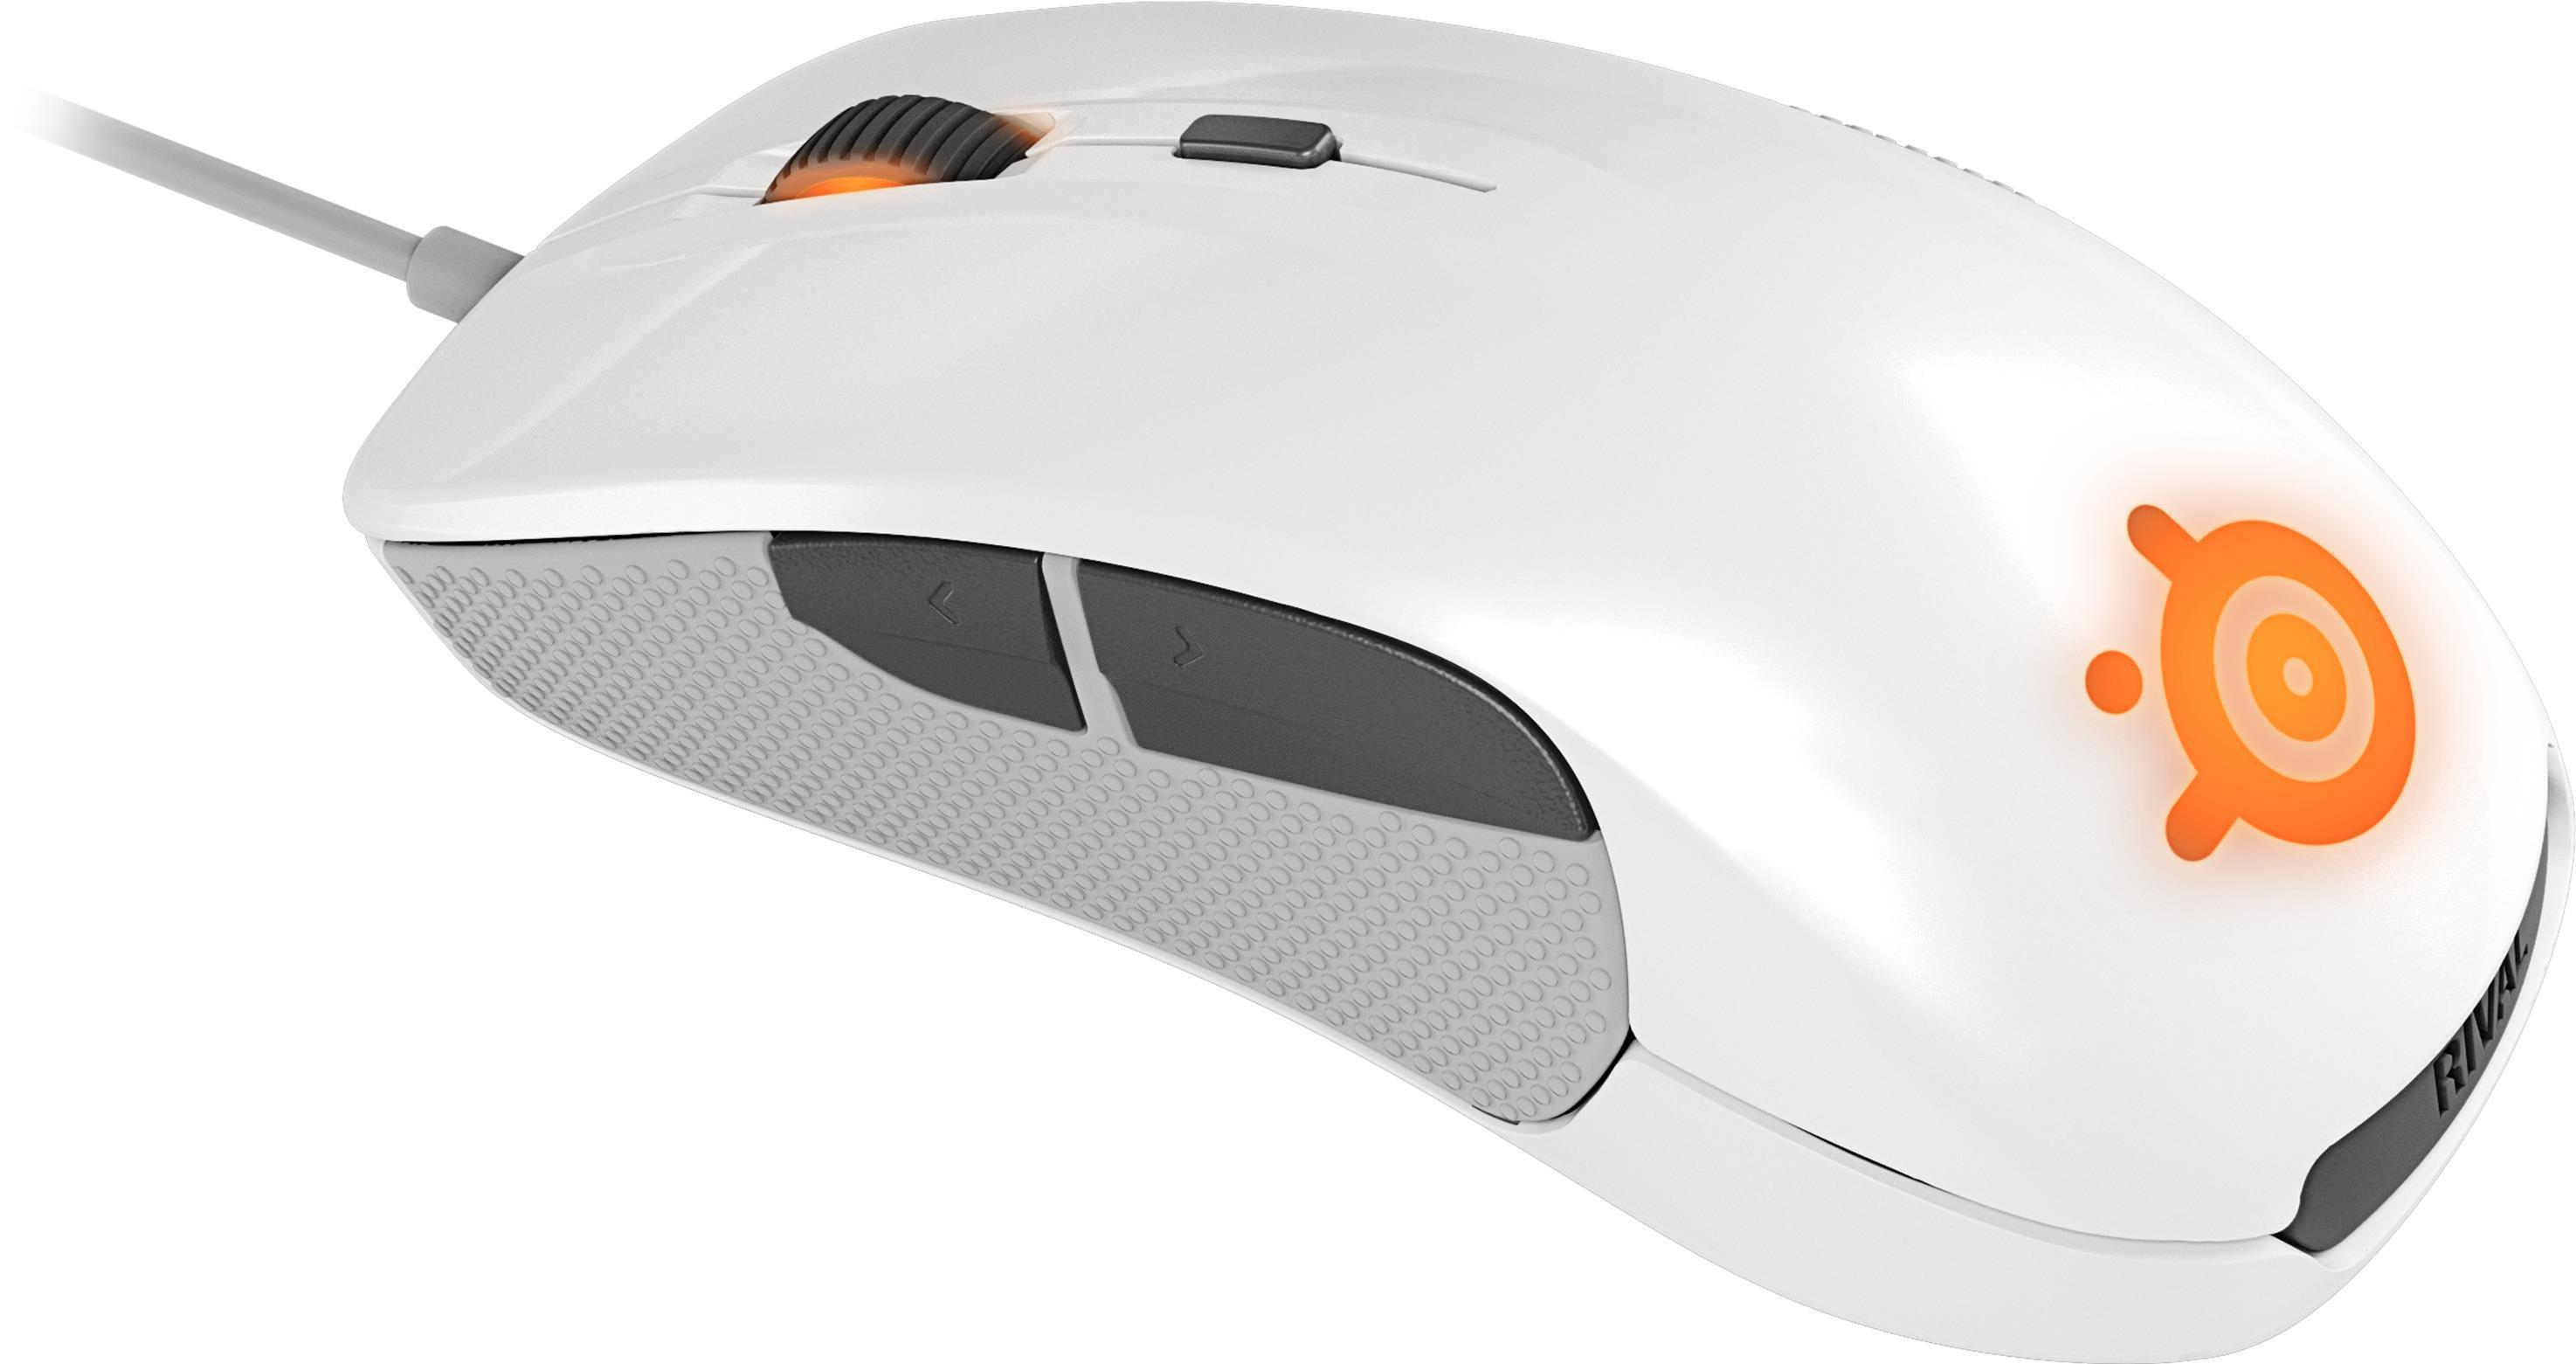 SteelSeries Rival Gaming Mouse White Limited Edition